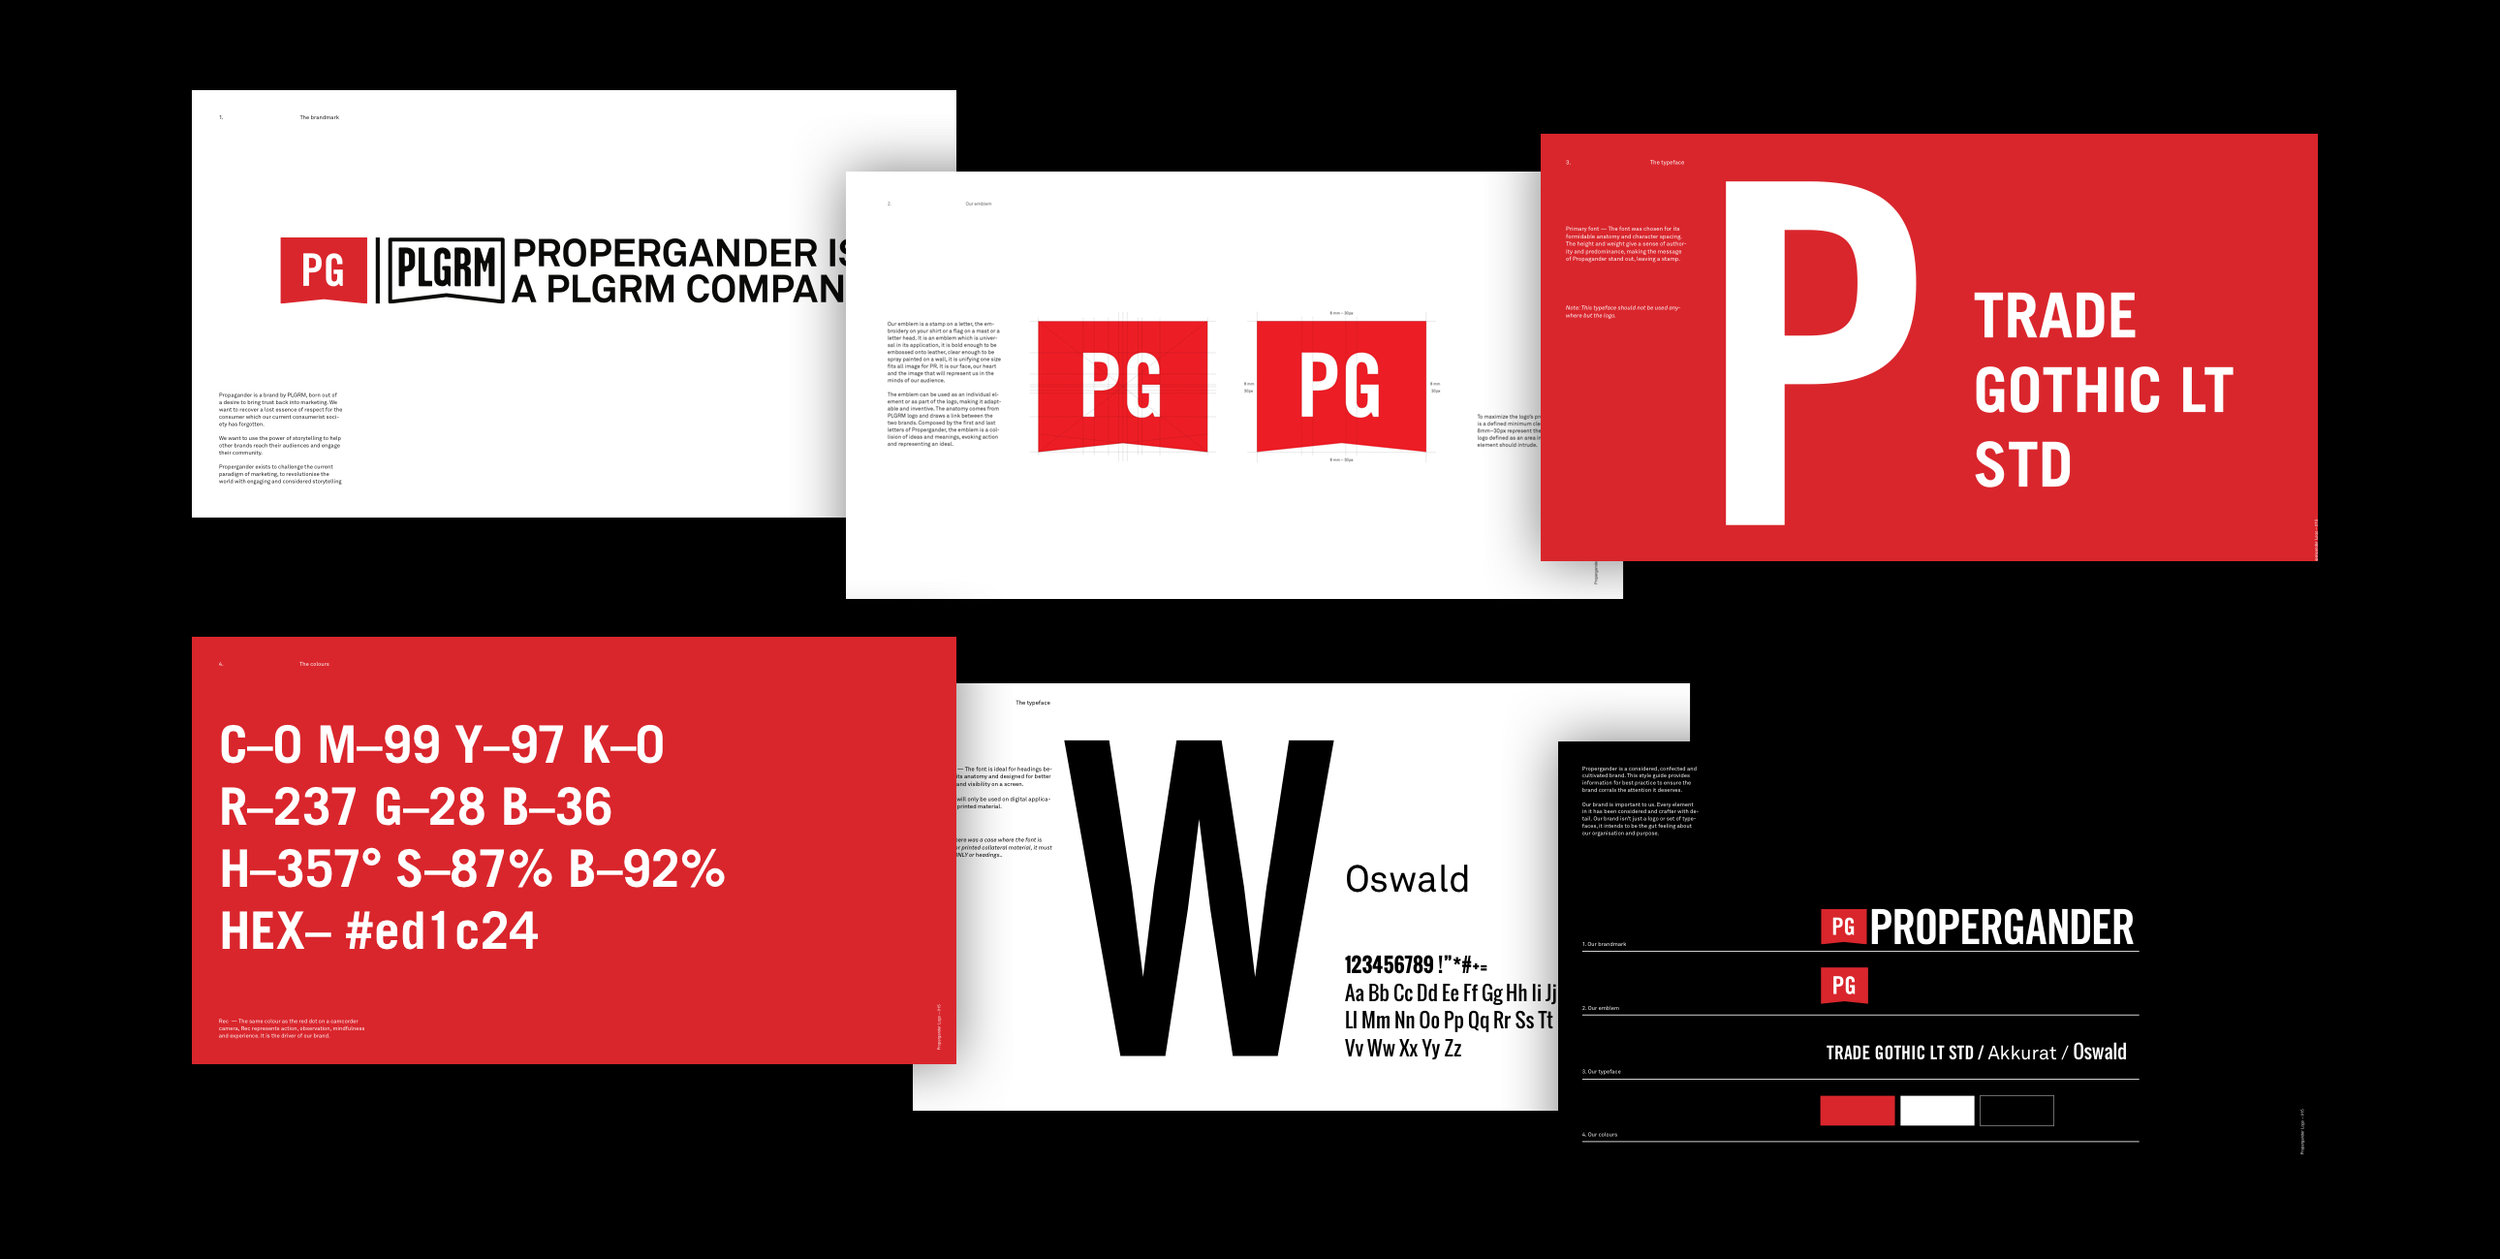 Detailed view of the final brand guidelines